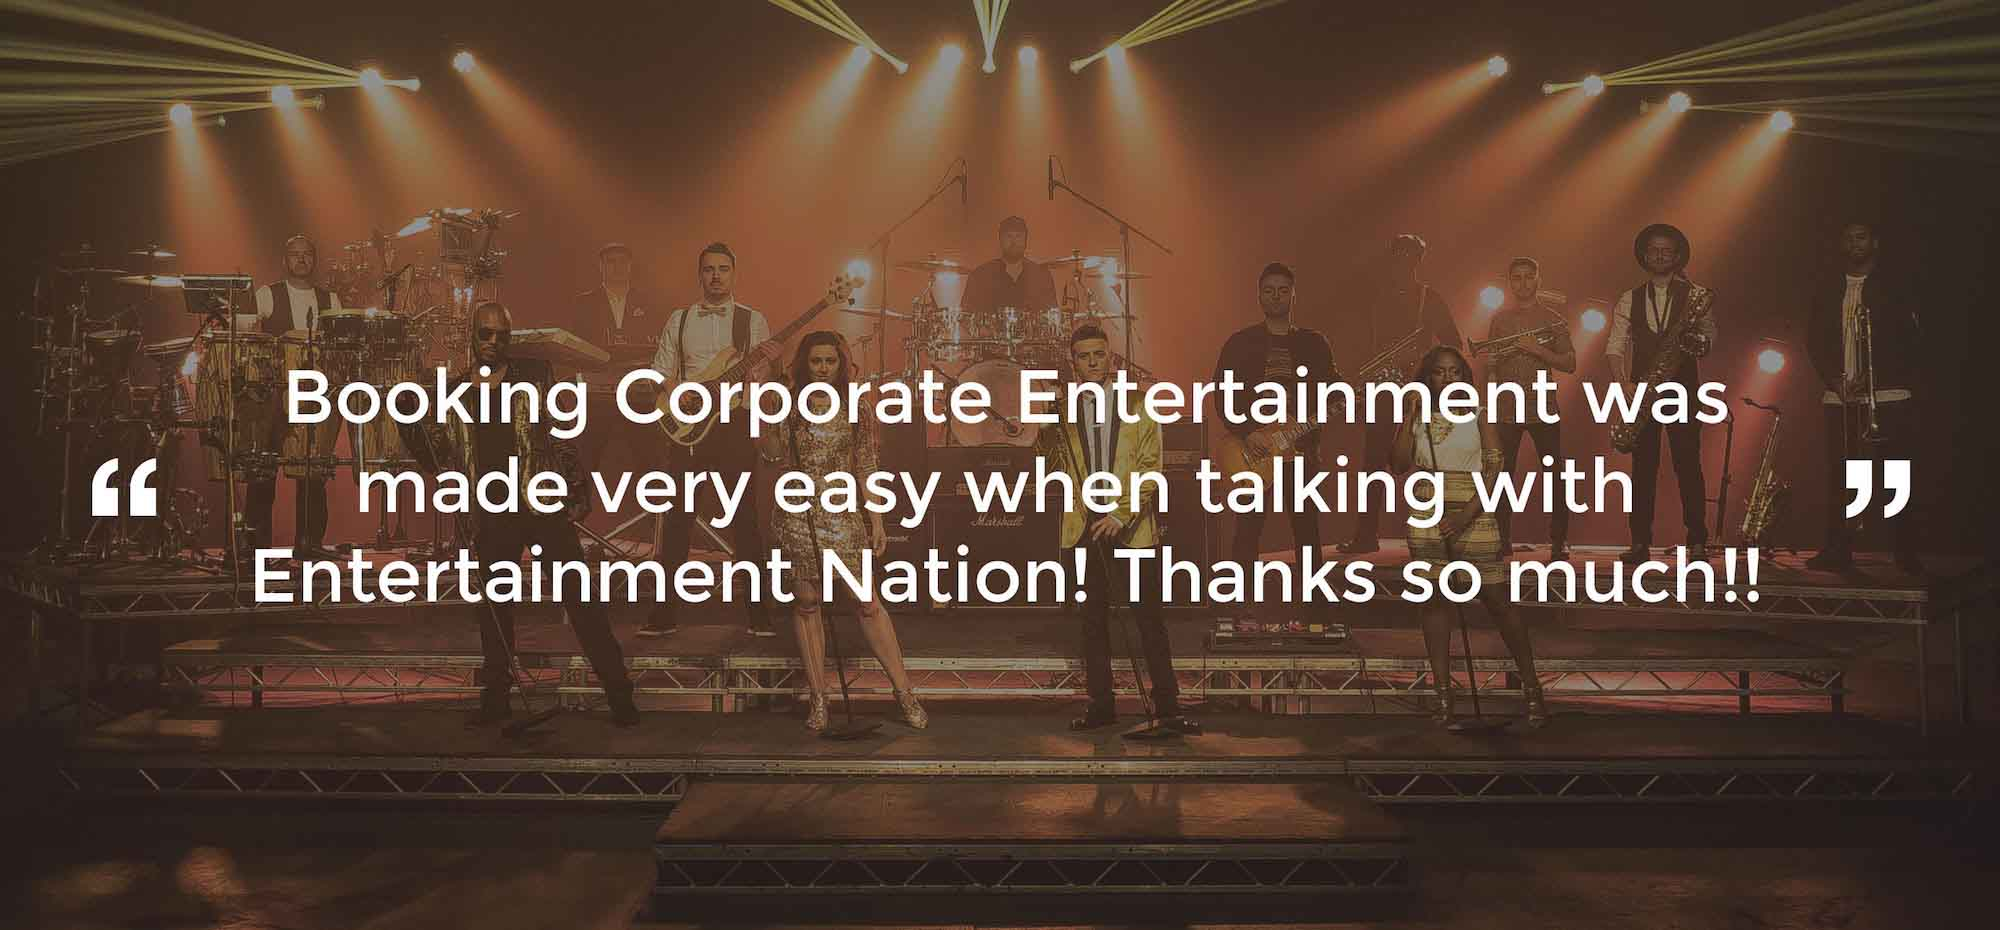 Review of Corporate Entertainment Cambridge